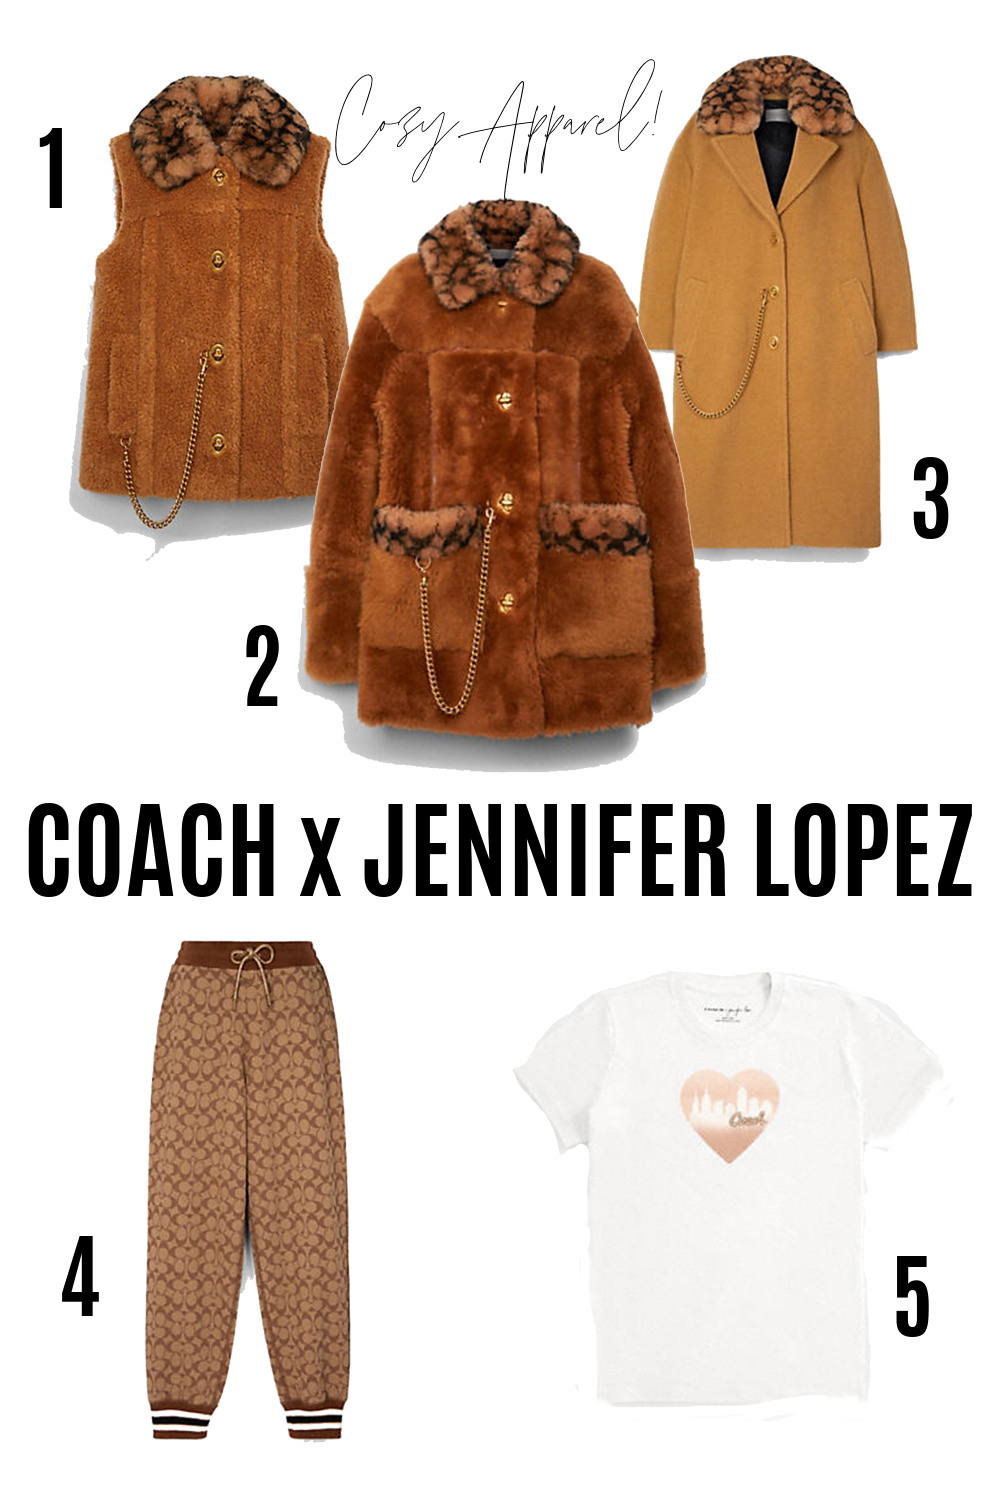 COACH Jennifer Lopez Collection I Cozy Apparel #ootdstyle #fashionstyle